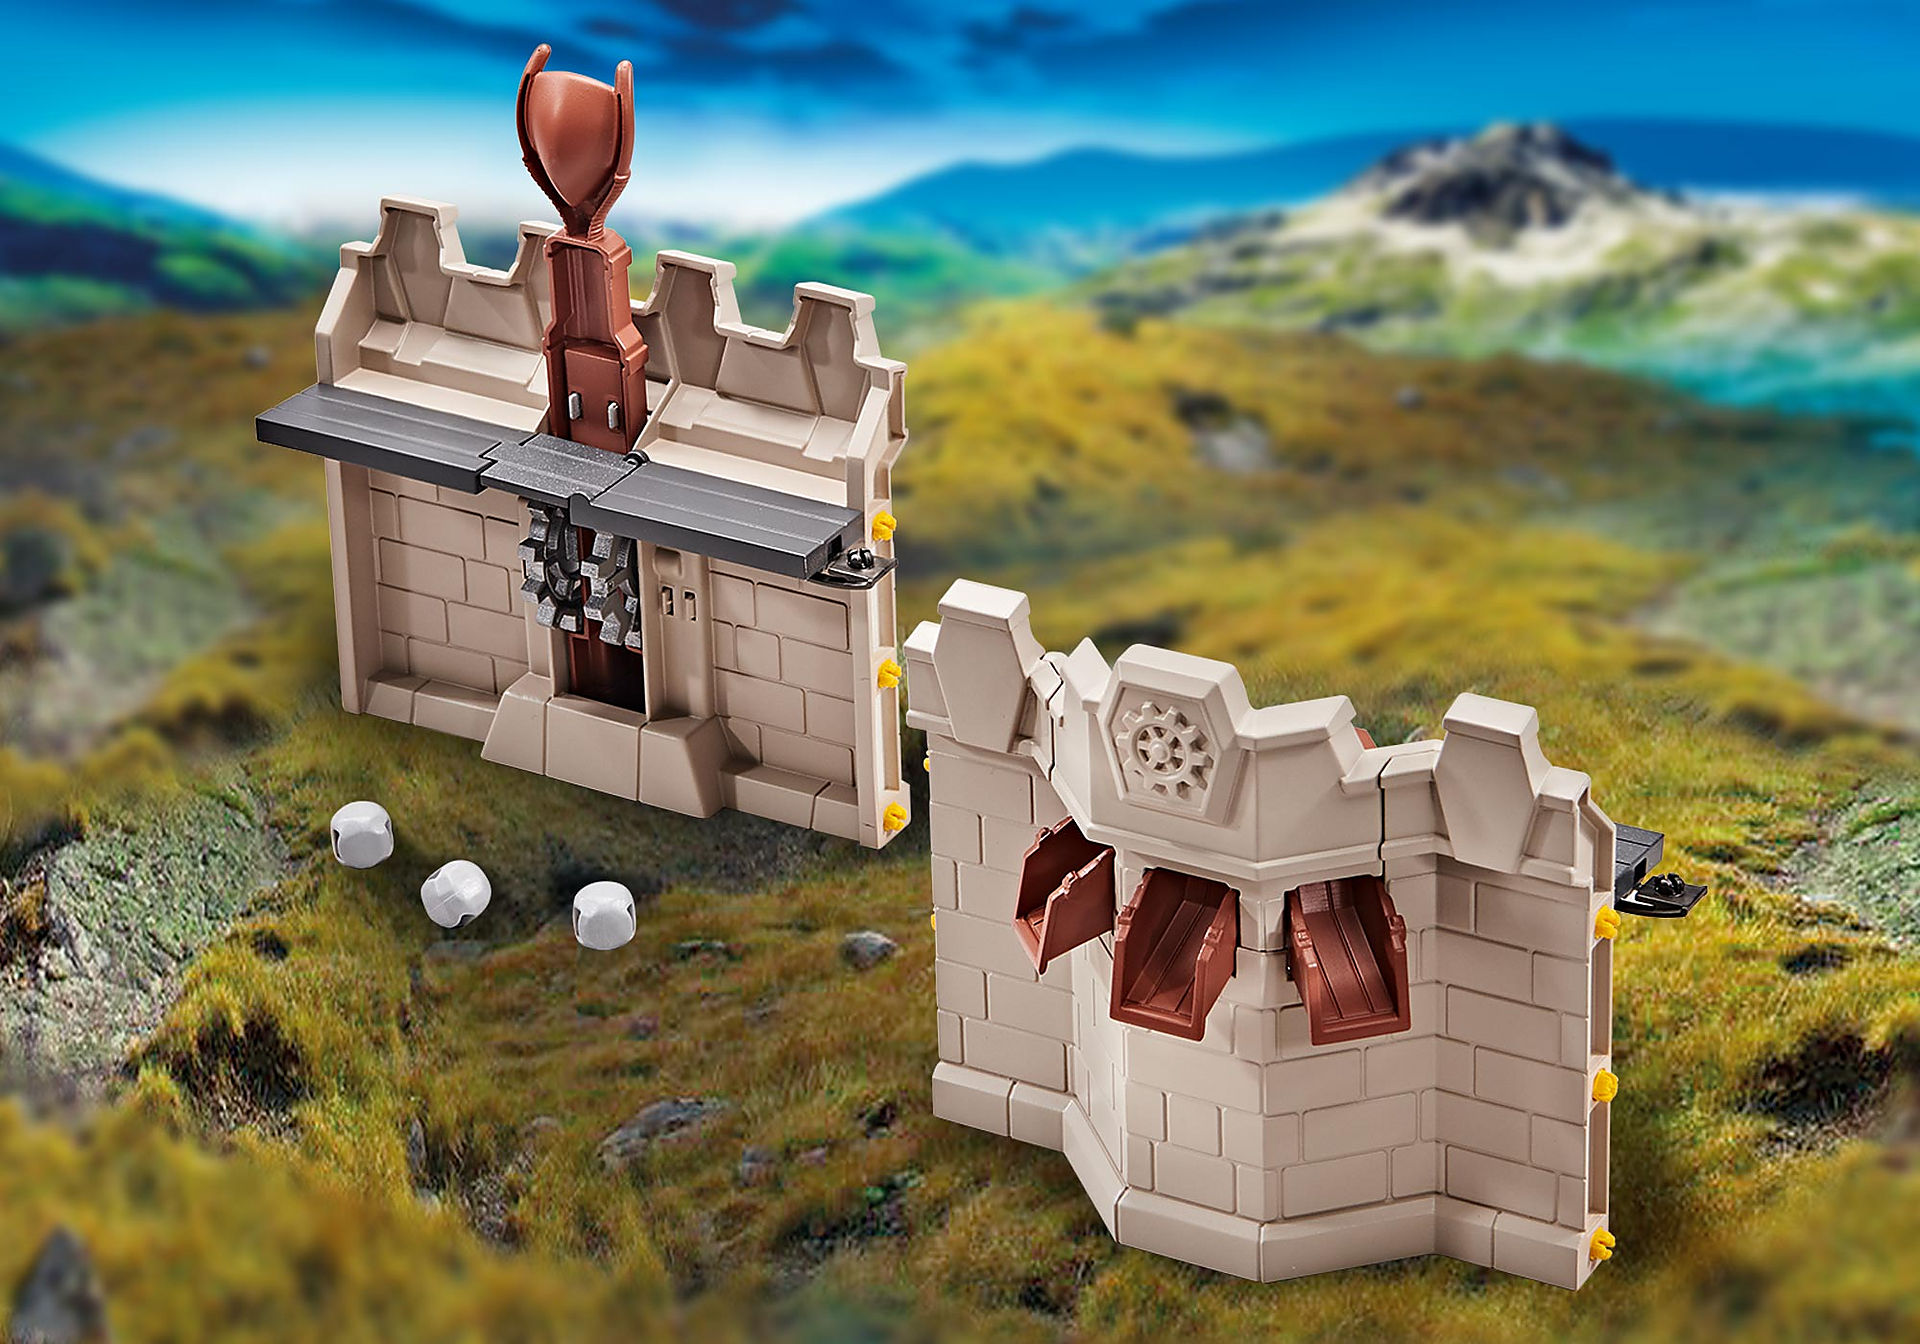 http://media.playmobil.com/i/playmobil/9839_product_detail/Mur d'extension et catapulte pour le Grand château des Chevaliers Novelmore